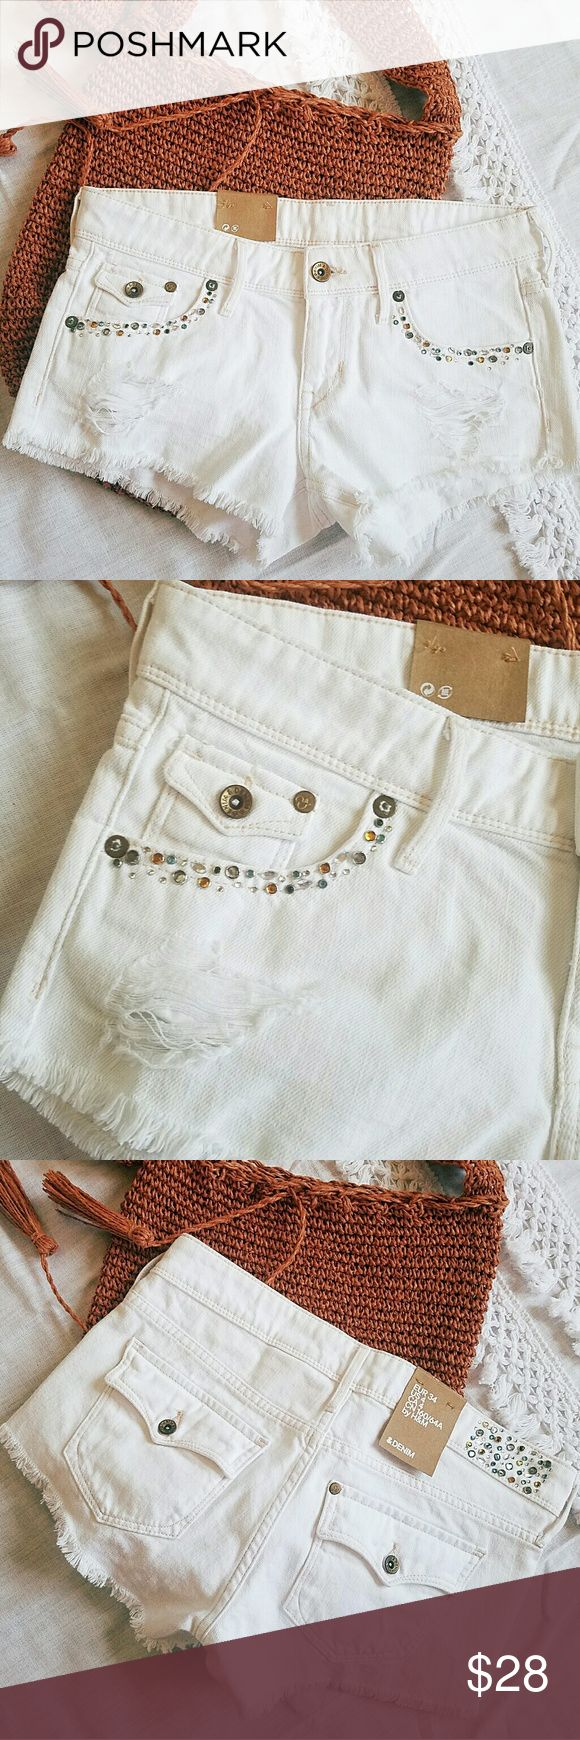 """H&M Bejeweled White Distressed Jean Shorts Cutoffs New with Tags H&M &Denim white bejewelled embellished cutoffs denim shorts. Flap back pockets. Zipper closure. Chic distressing and fraying along hem. Perfect for spring and festival season!  Size 34 (US 4)  Rise 7.25"""" / Inch Seam 2.25"""" / Waist 15""""   100% Cotton (a little stretch) H&M Shorts Jean Shorts"""